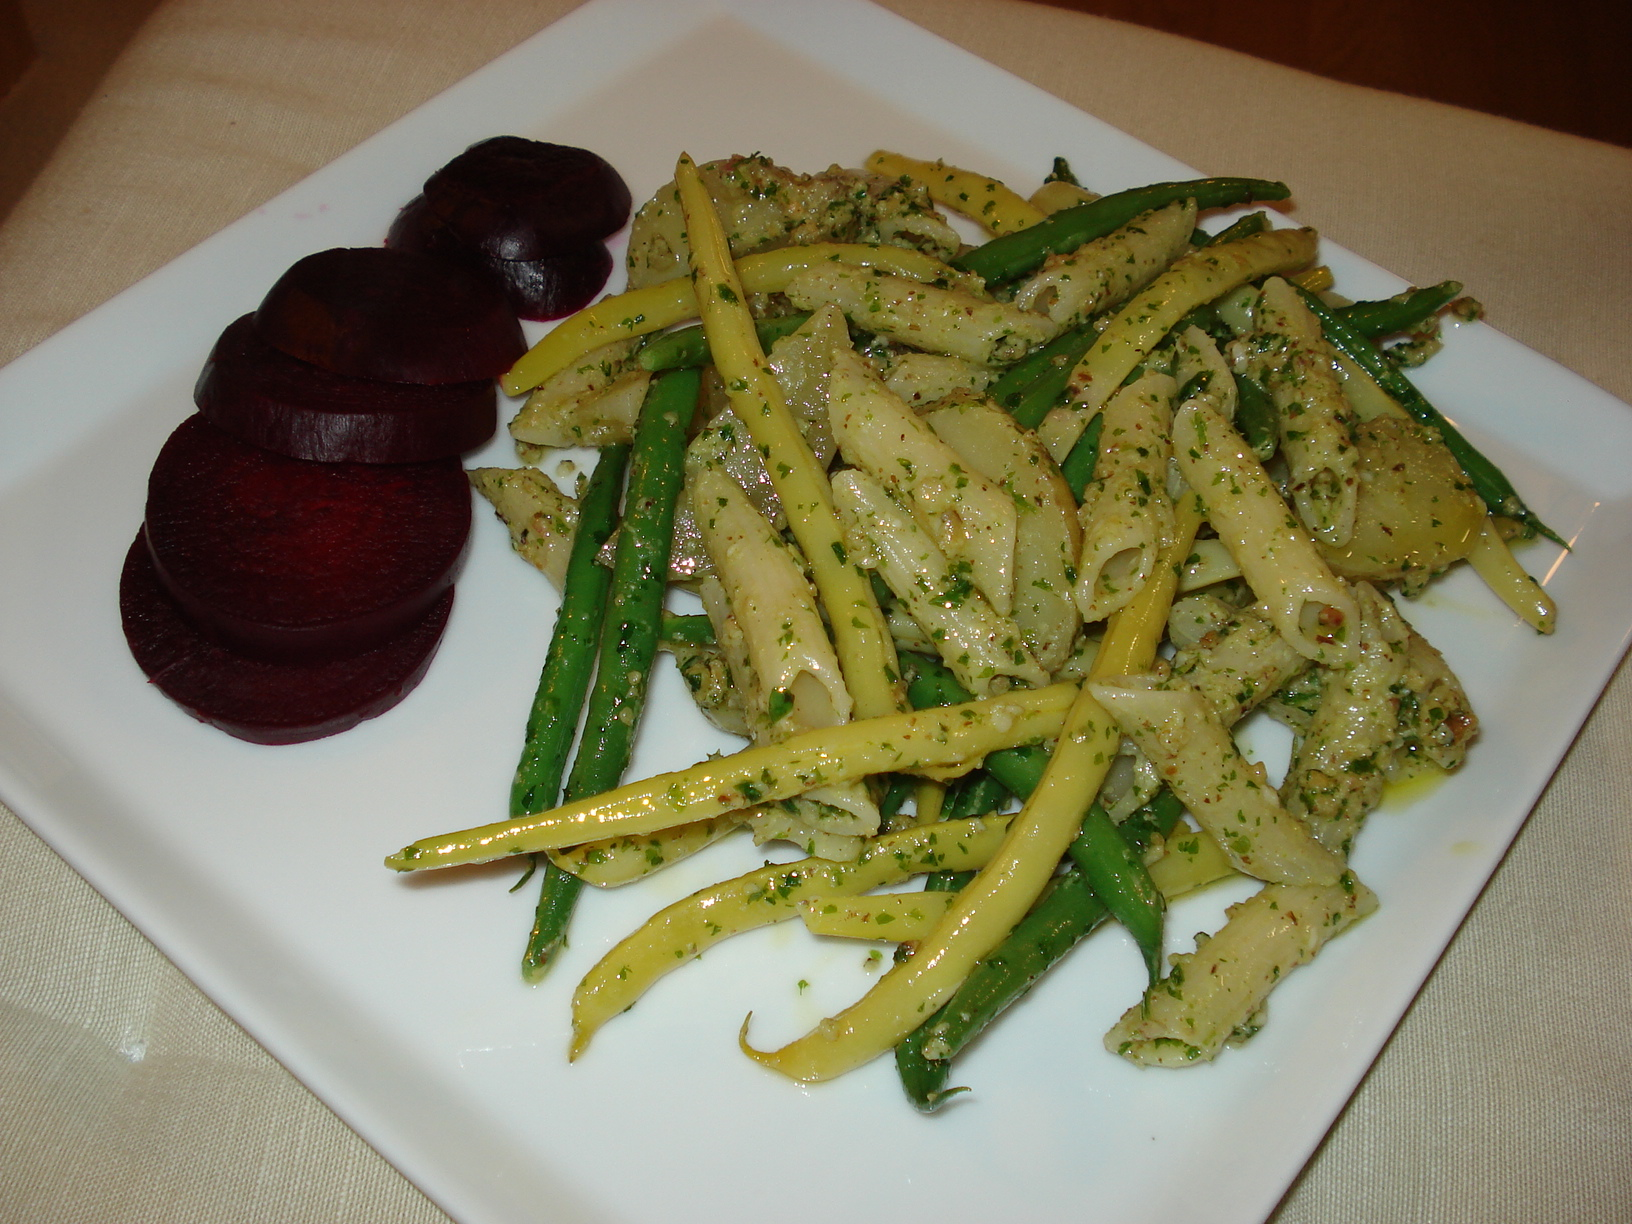 Walnut, parsley and goat cheese pesto with pasta, potatoes and green beans